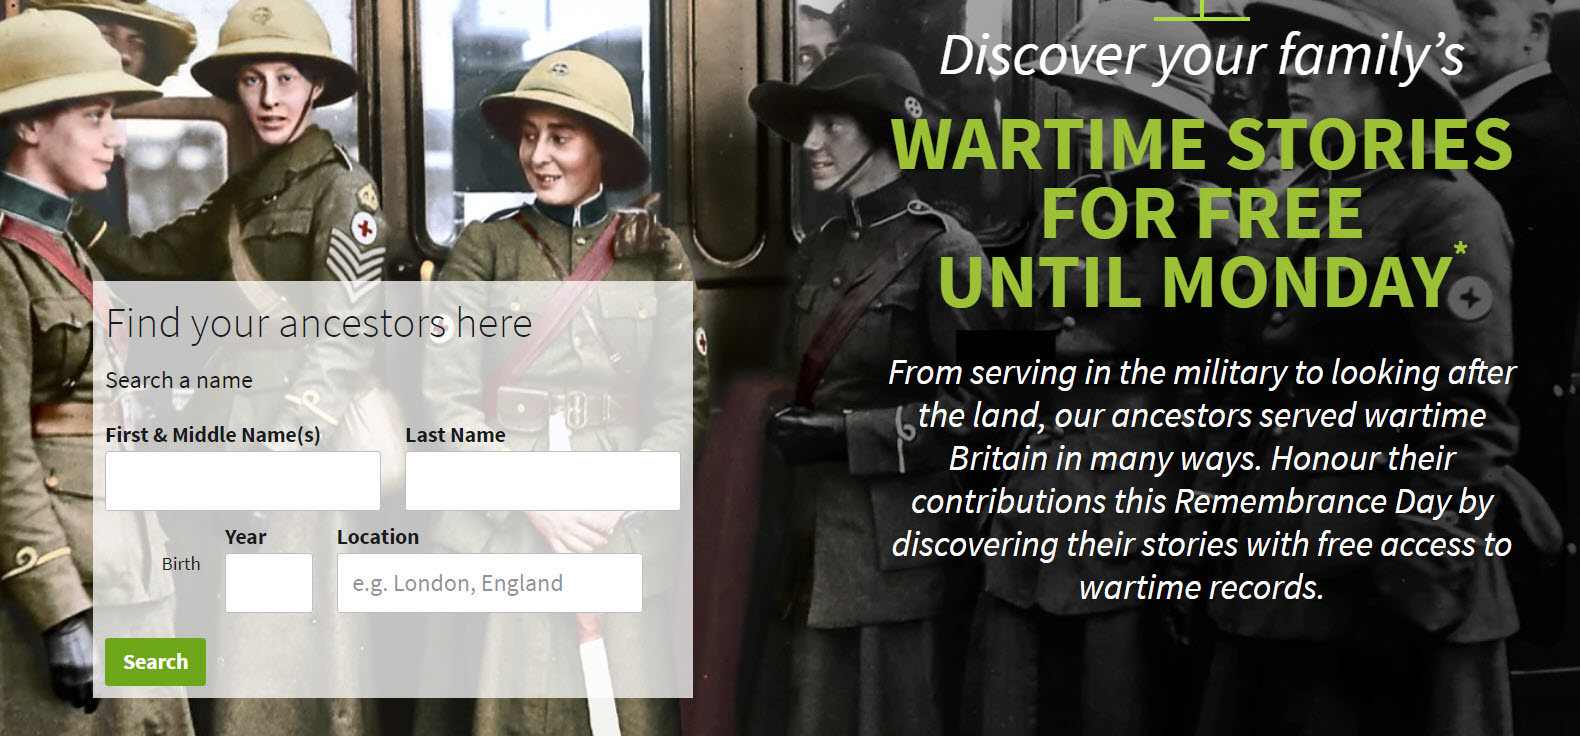 Get FREE ACCESS to Ancestry UK's Wartime Records collection NOW through 11:59 pm (GMT) Monday November 11th. This includes the UK & Irish WWI and WWII Wartime Records Collection. NOTE: if you do NOT have an Ancestry UK account you will need to create a NEW ACCOUNT if you only have an Ancestry US account in order to access the records.